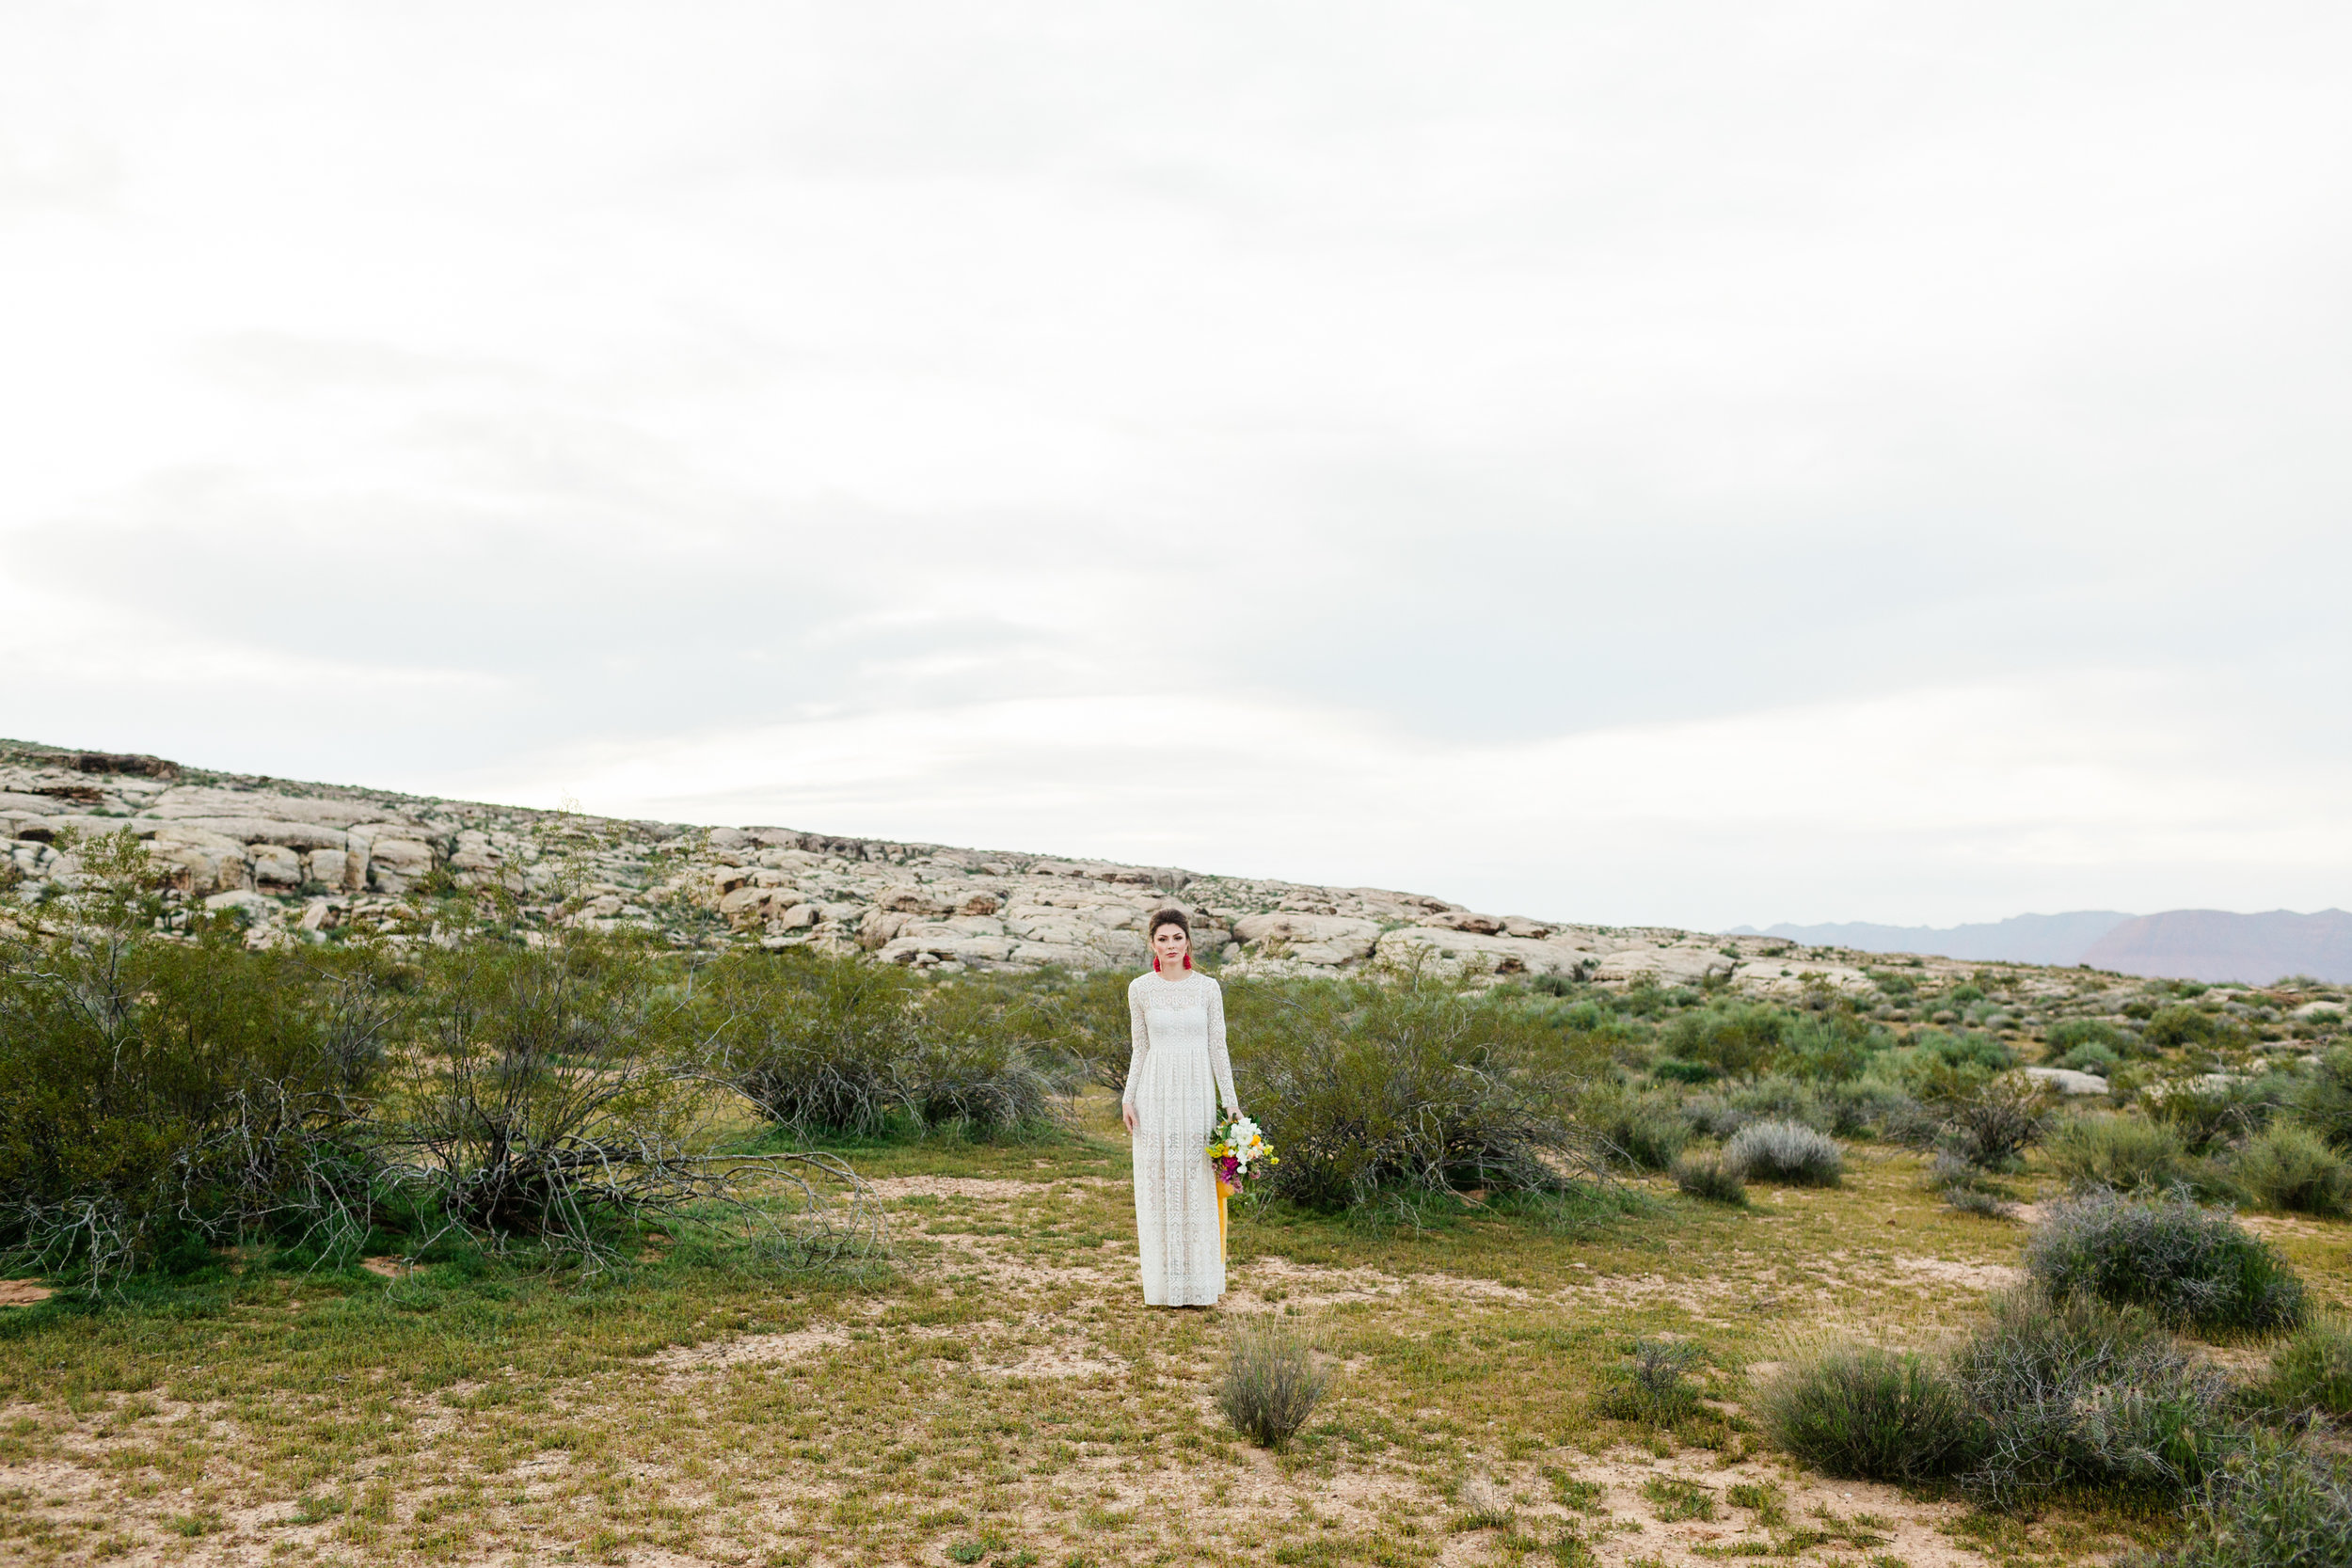 Southern Utah photographer, Utah wedding photographer, Zion wedding photographer, st. george wedding photographer, southern Utah wedding, Zion National Park wedding photographer, Zion elopement photographer, southern Utah wedding photography, st. george wedding photography